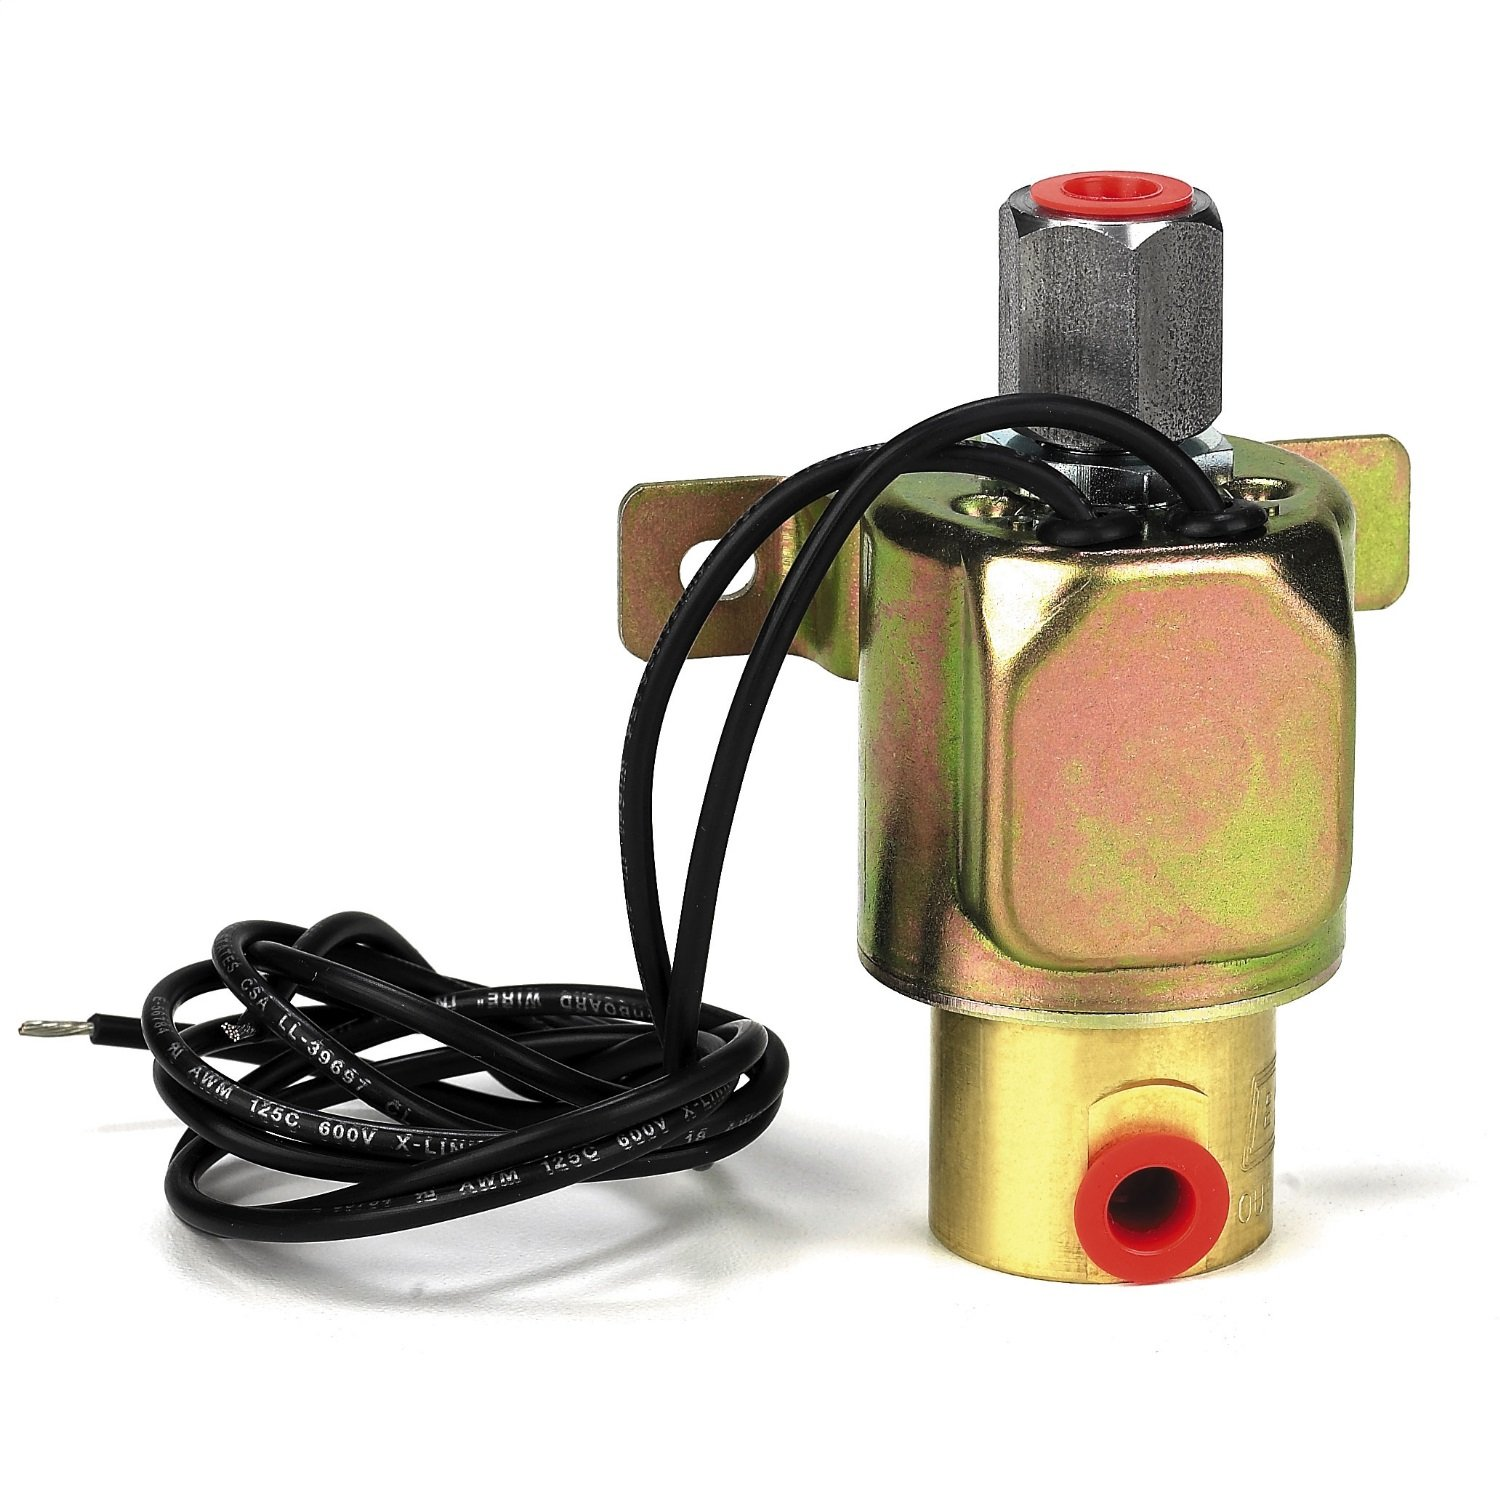 B&M 46075 Launch Control Solenoid by B&M